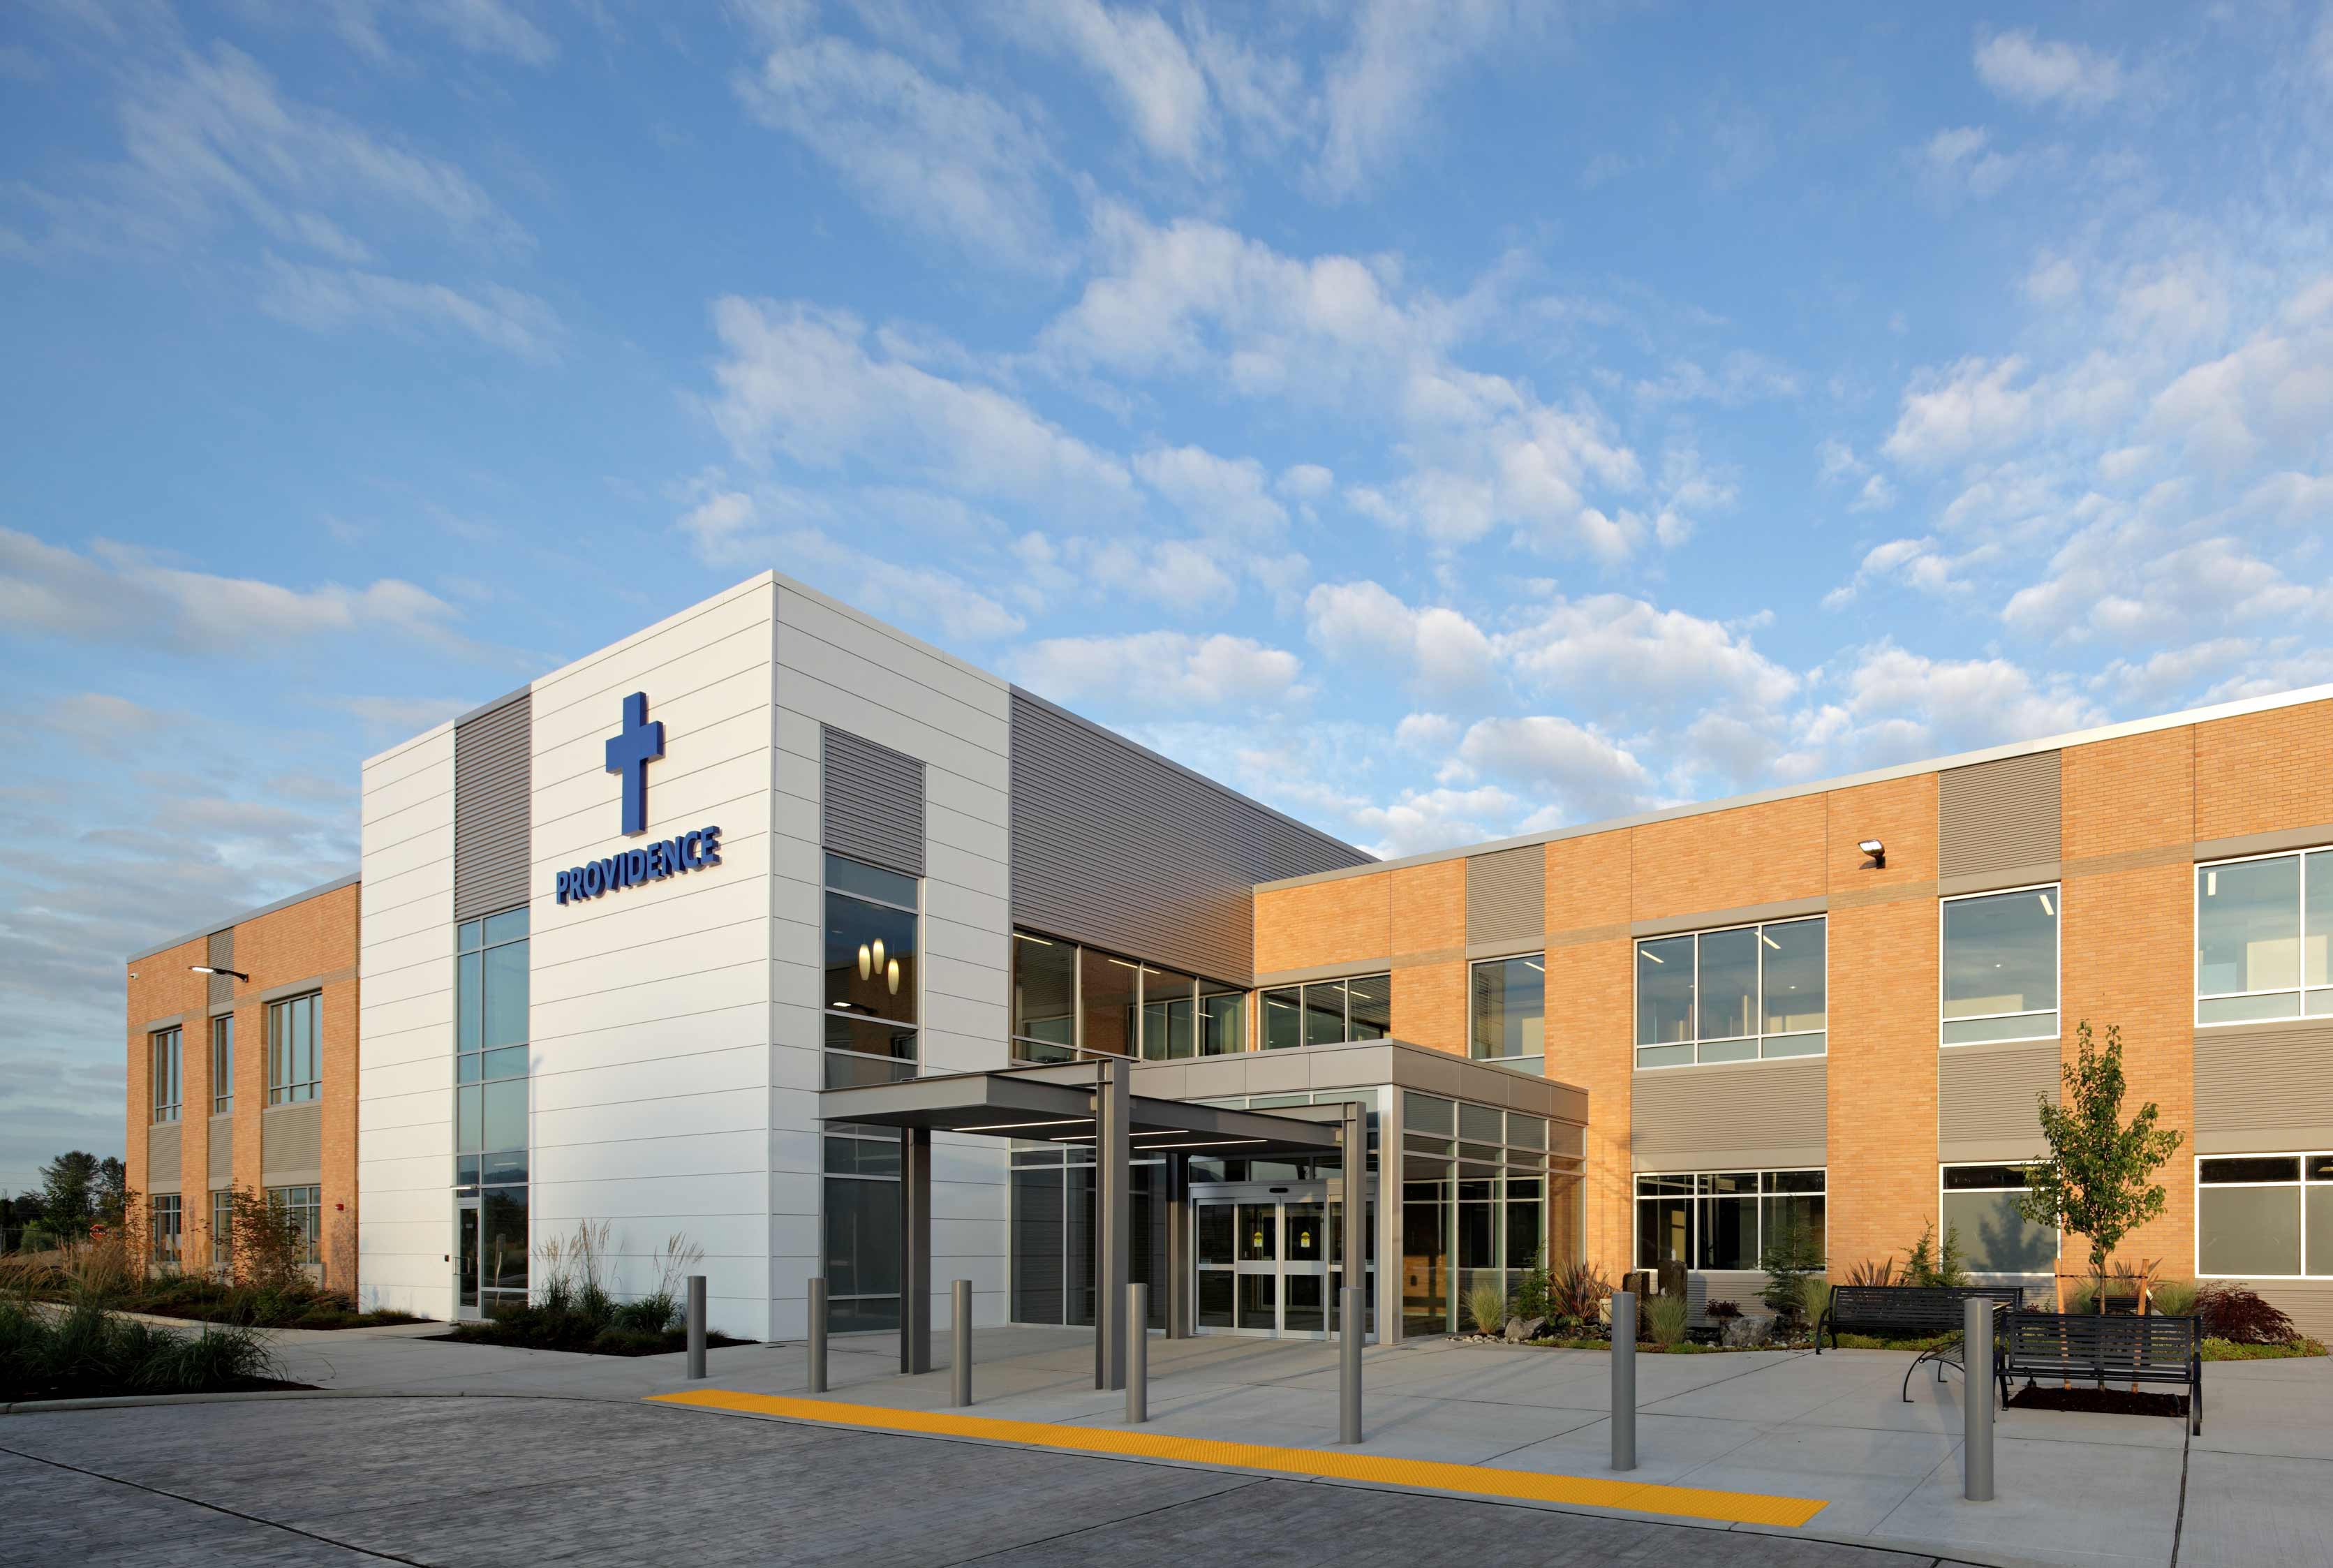 Read more about Neighborhood Outpatient Center